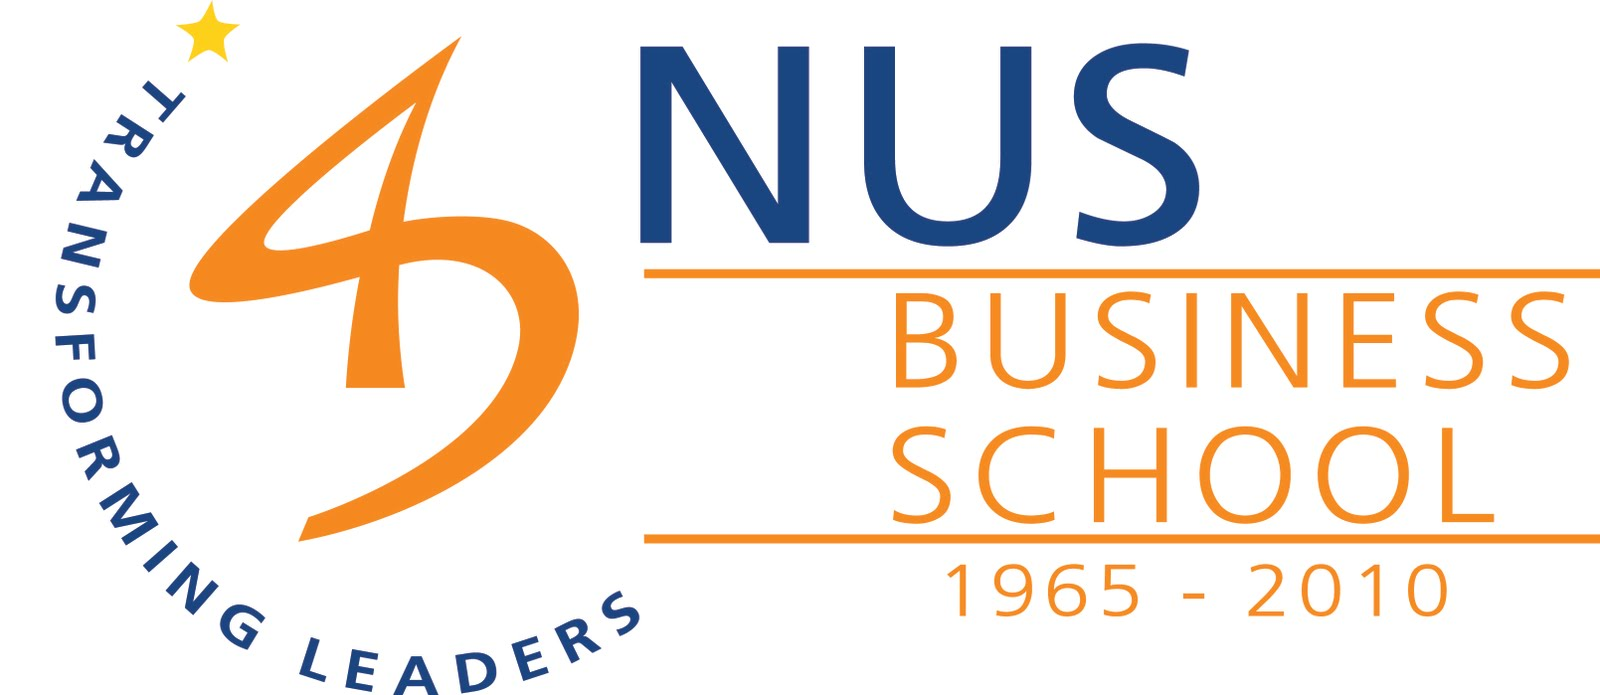 nus business school essay questions Emba program at ucla - nus executive mba admissions, applications essays, application details, admission deadlines, class profile prepare a strong application for ucla anderson school of management nus business school with seasoned consultants.